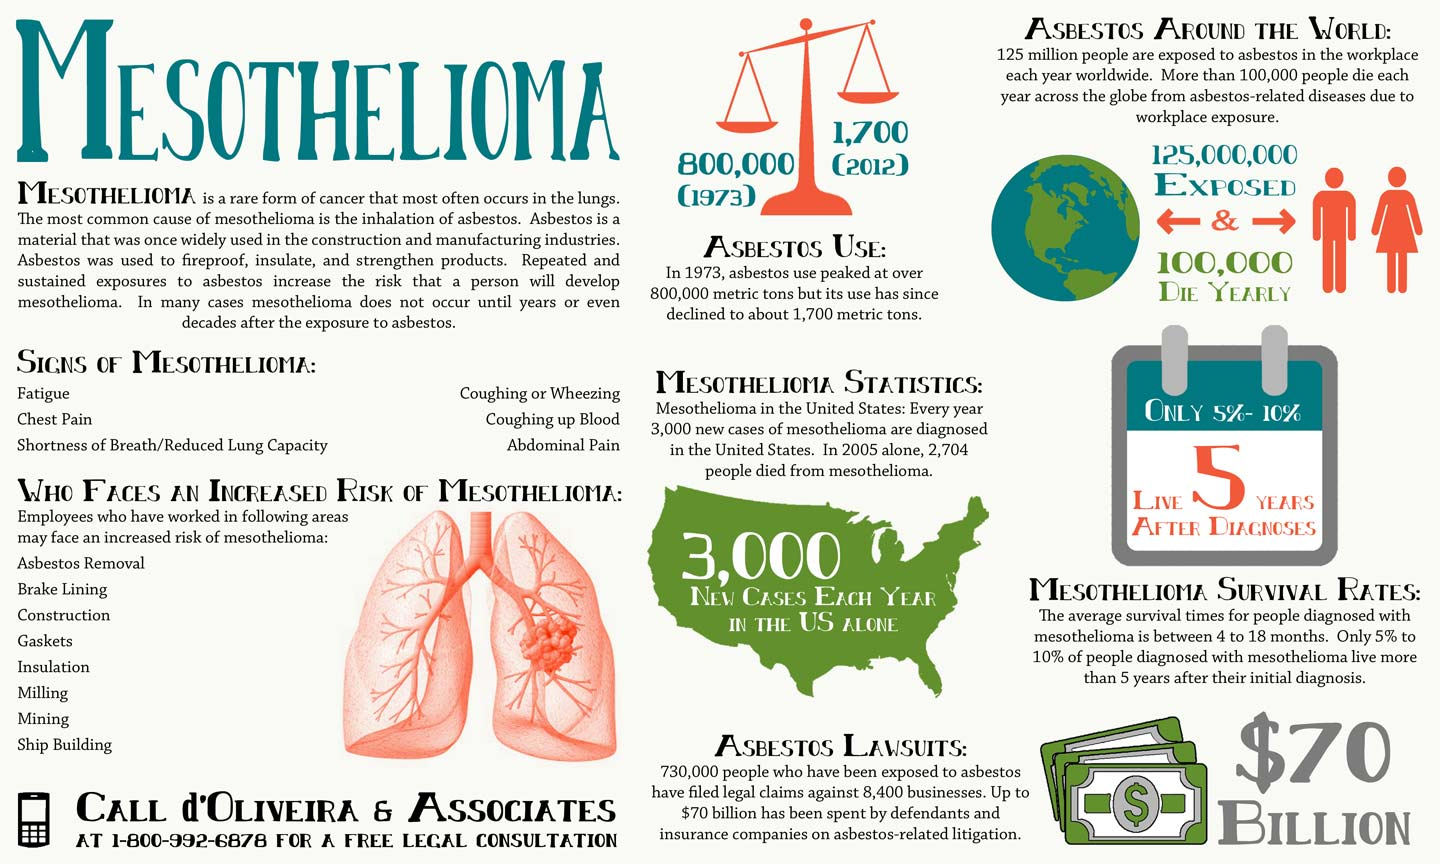 Mesothelioma survival rate info